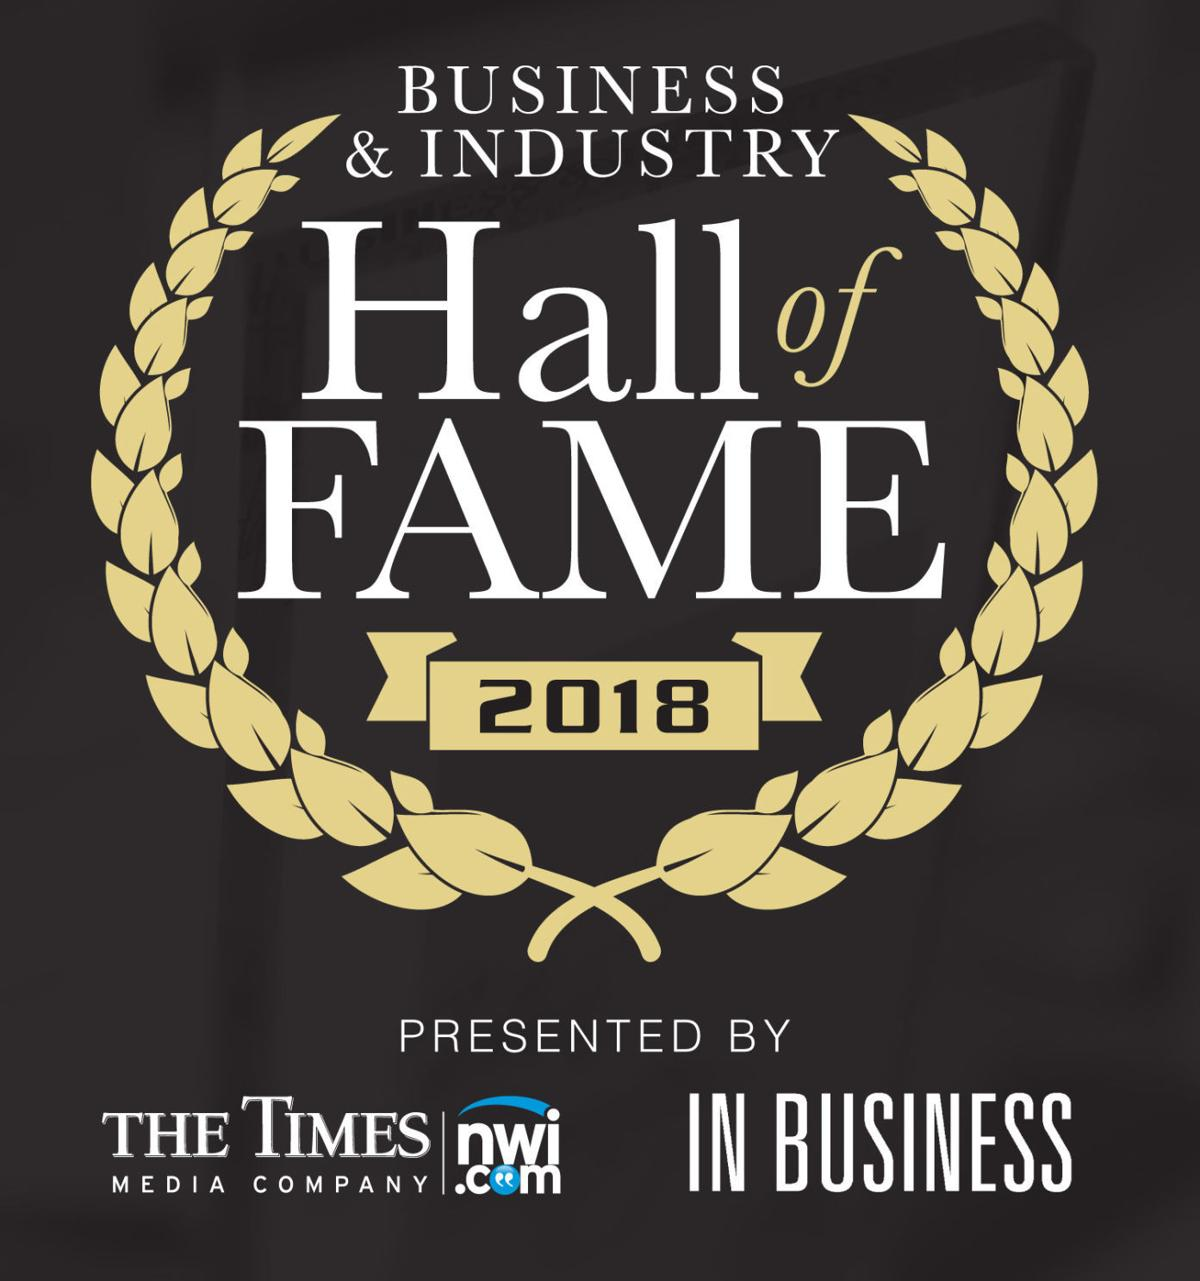 Business & Industry Hall of Fame logo